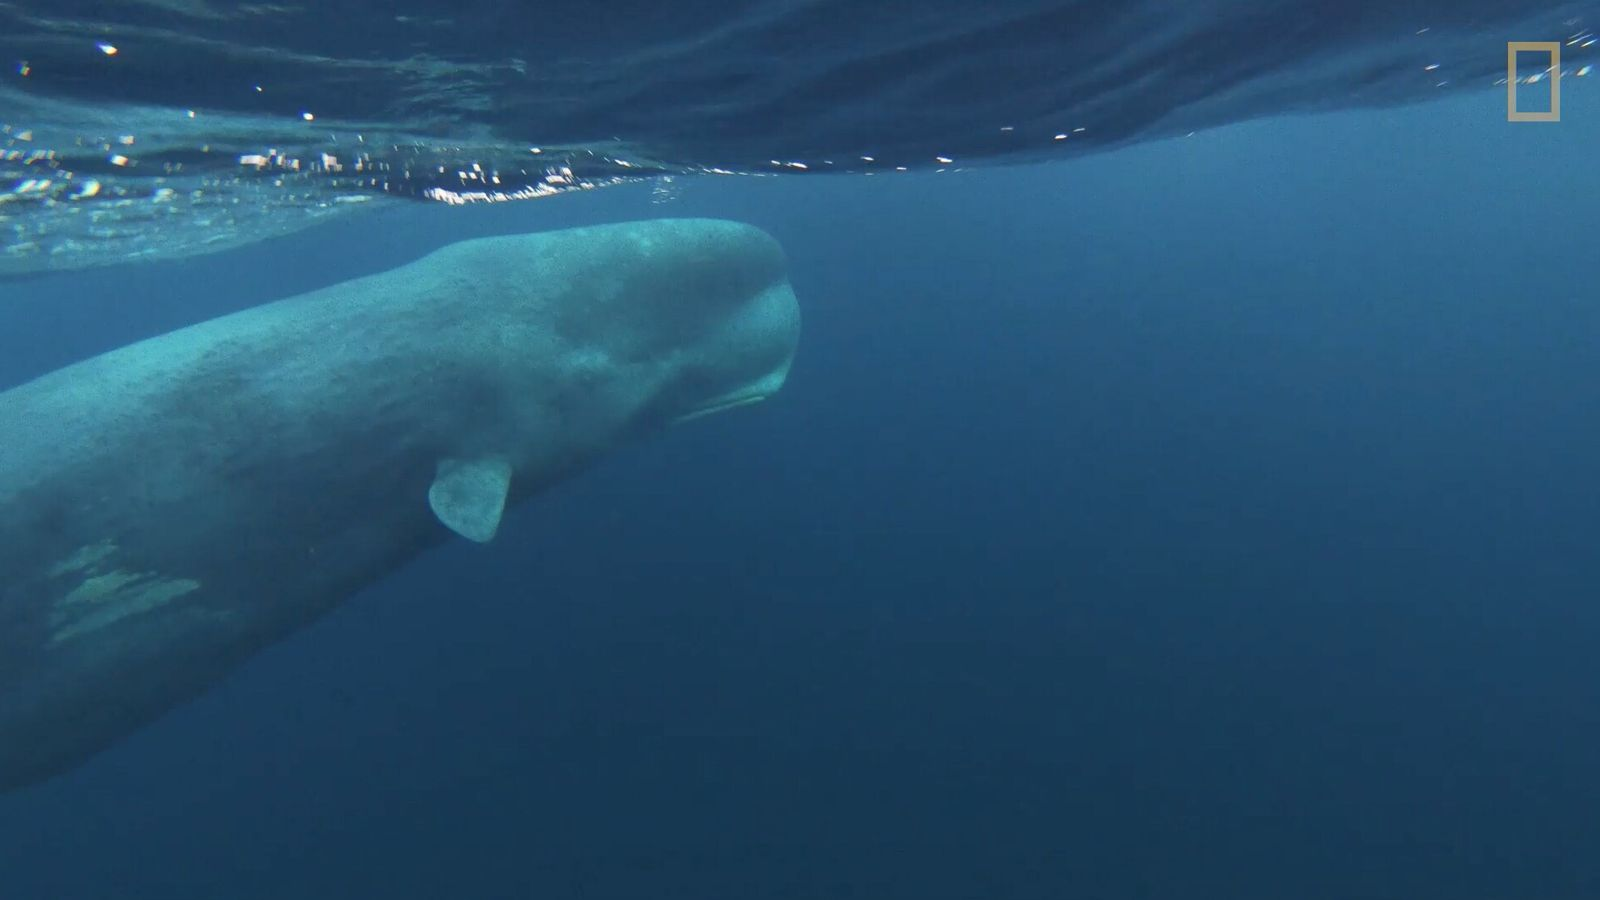 Andreas B. Heide, a free-diver and captain of the research vessel Barba captured this remarkably intimate footage ...